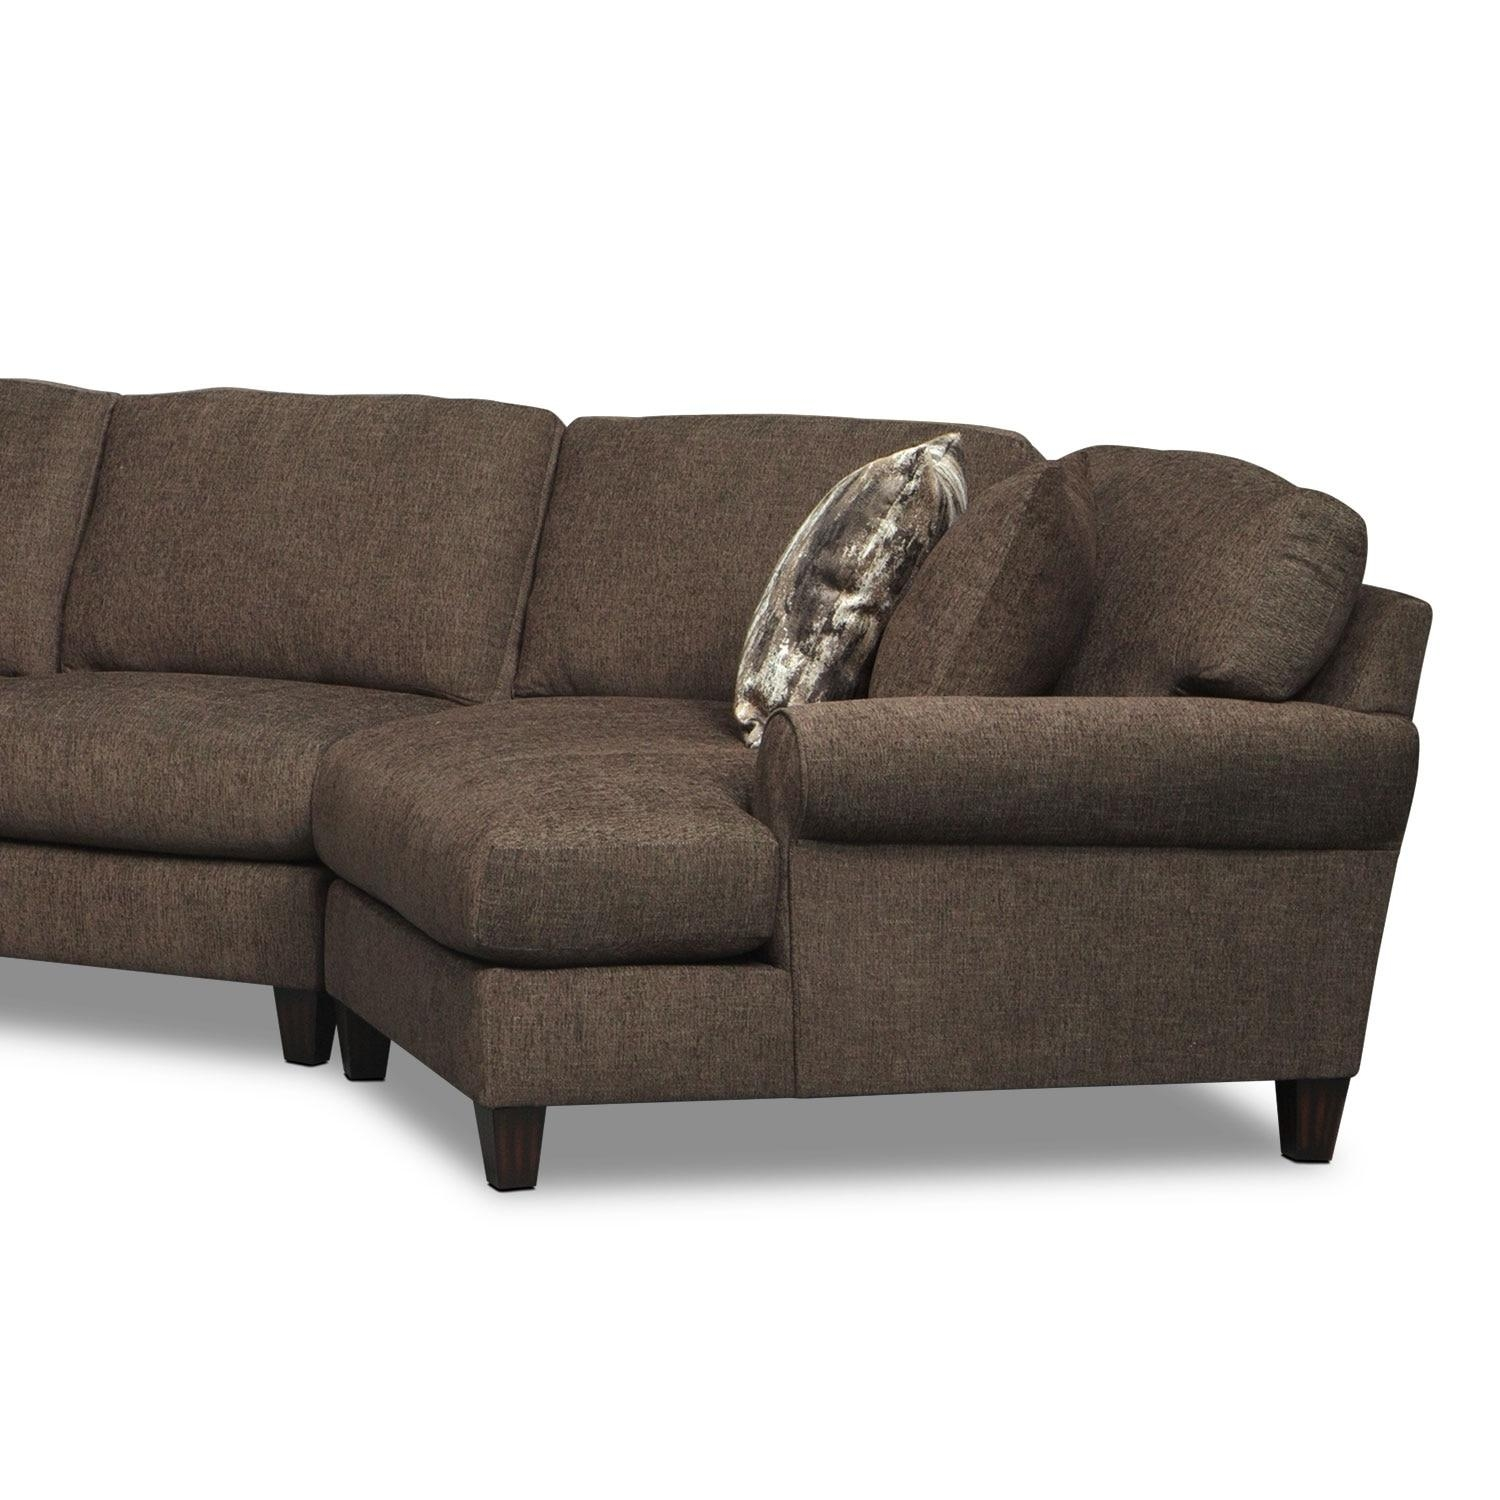 Karma 3 Piece Sectional With Left Facing Chaise And Right Facing For Sectional Sofa With Cuddler Chaise (View 18 of 20)